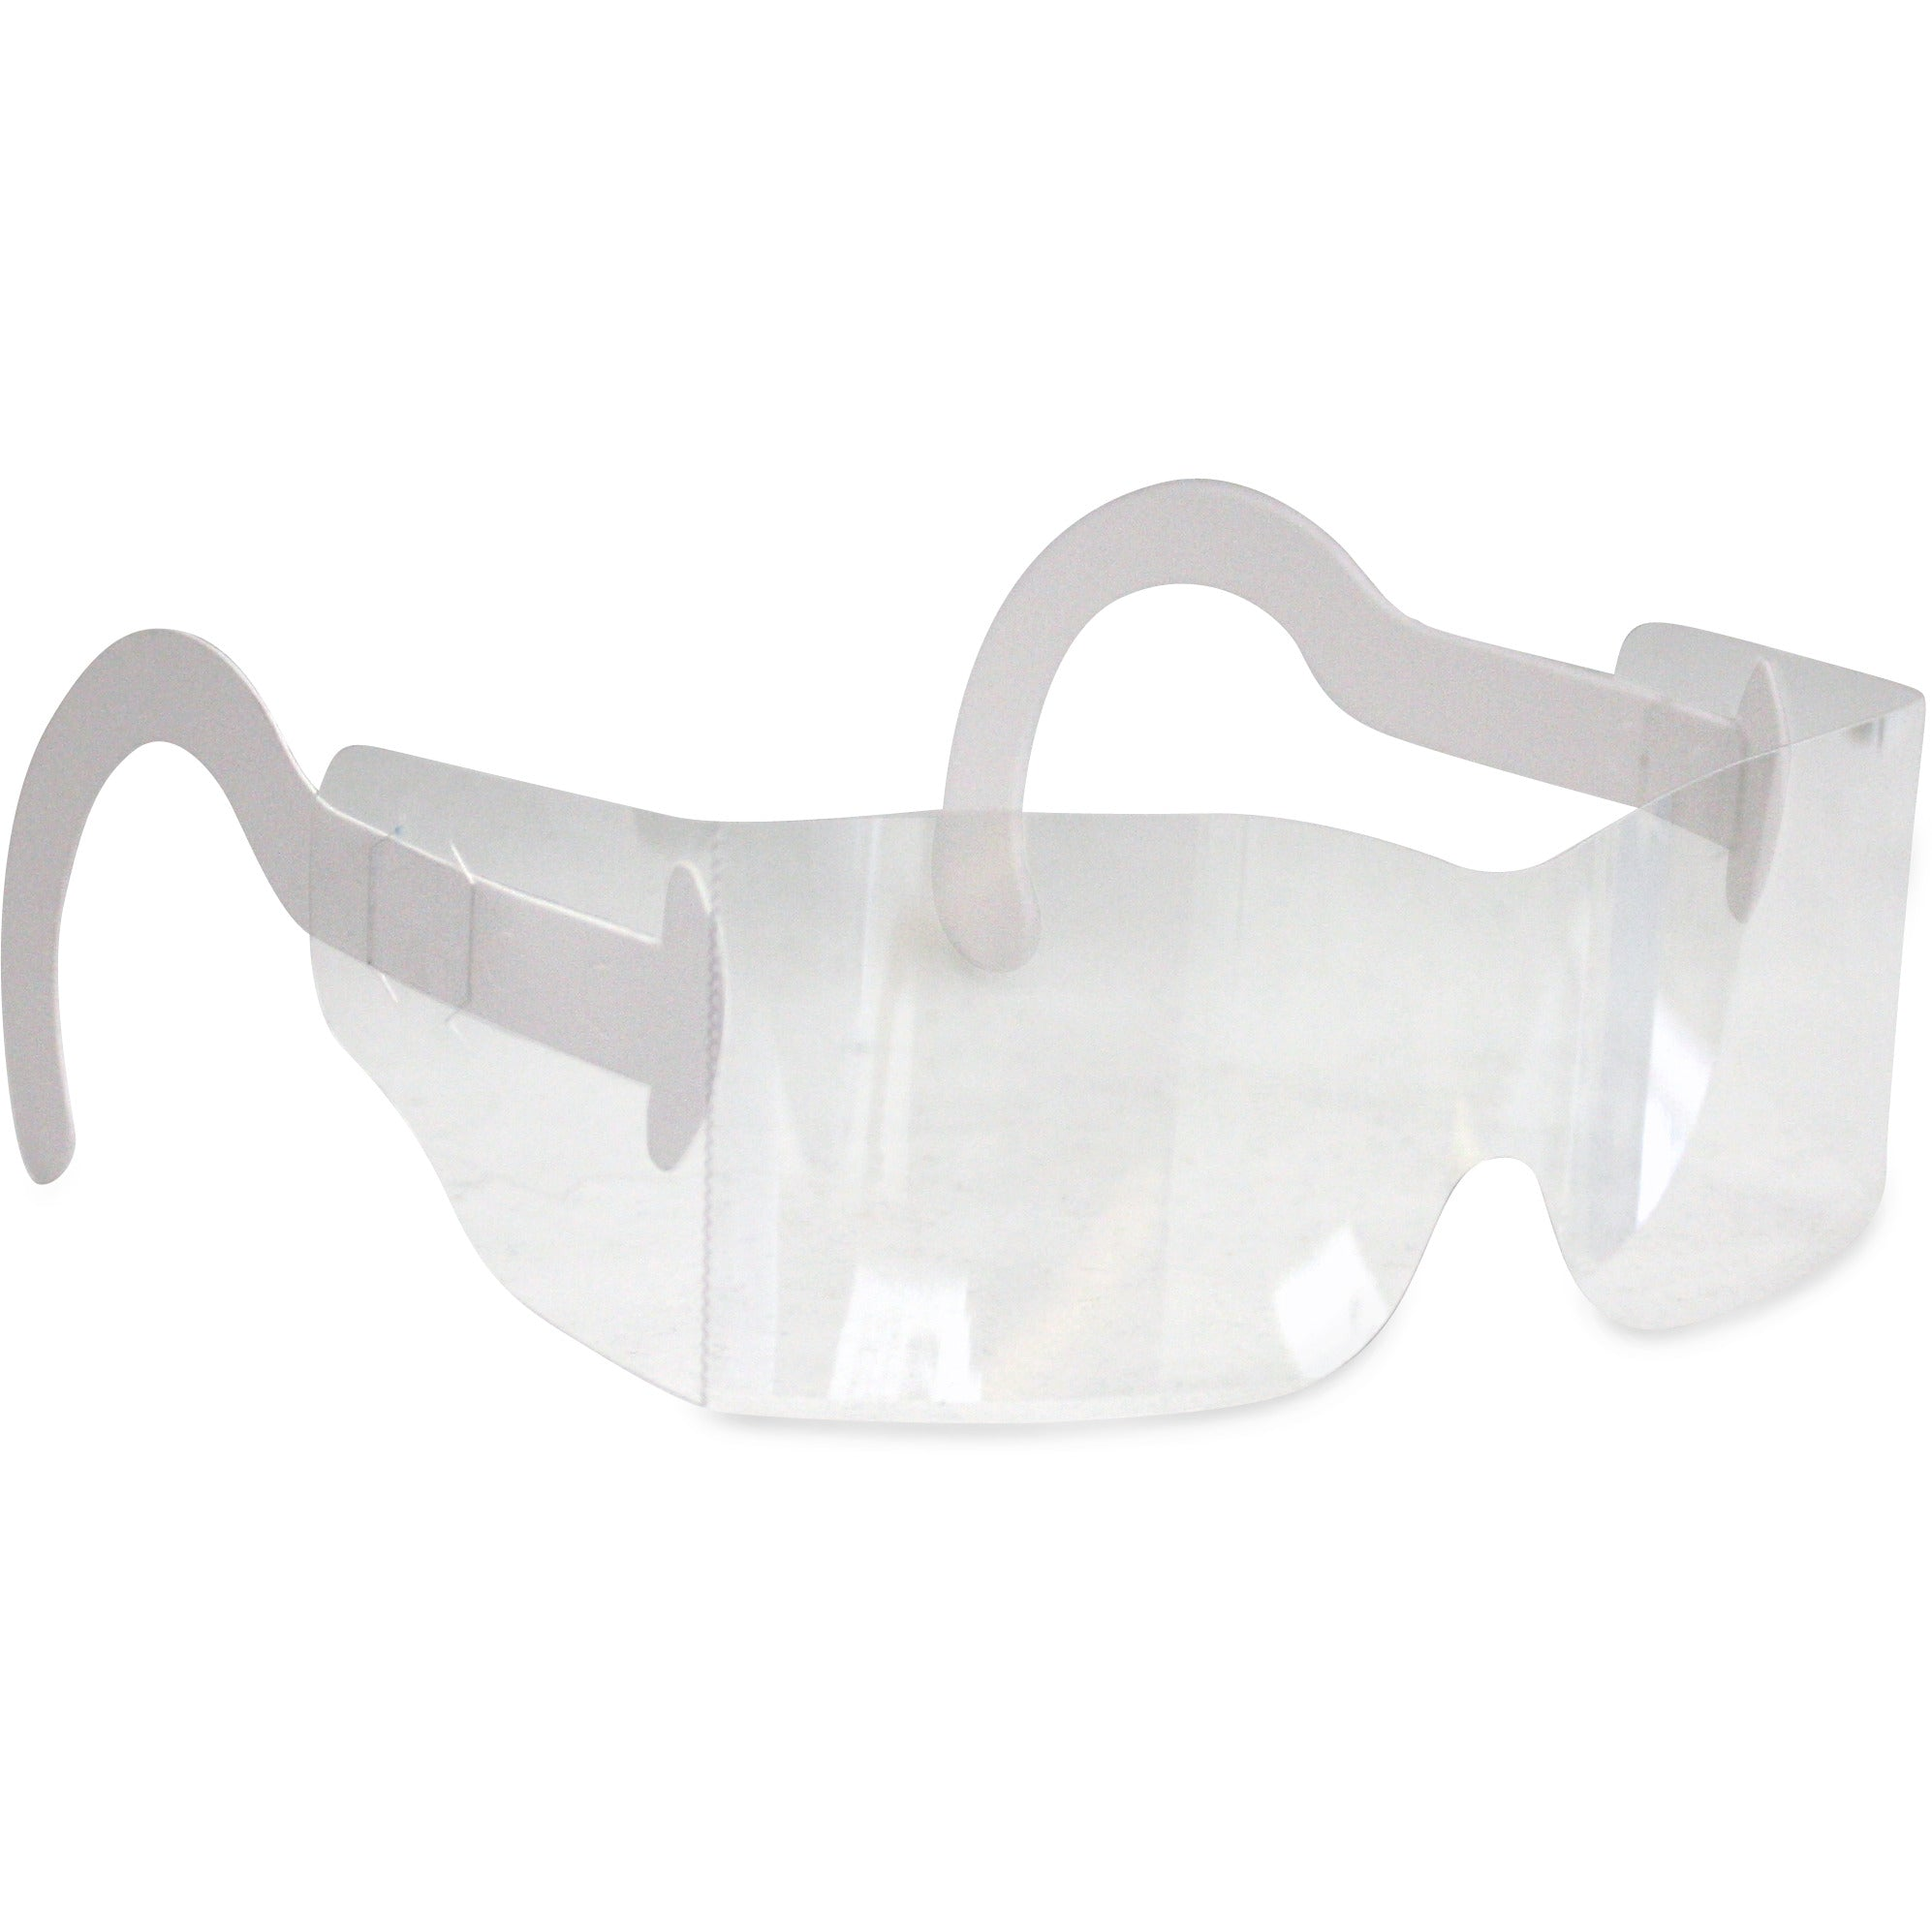 Disposable Medical Eye Shields | 100/box-Pro-Optics LLC